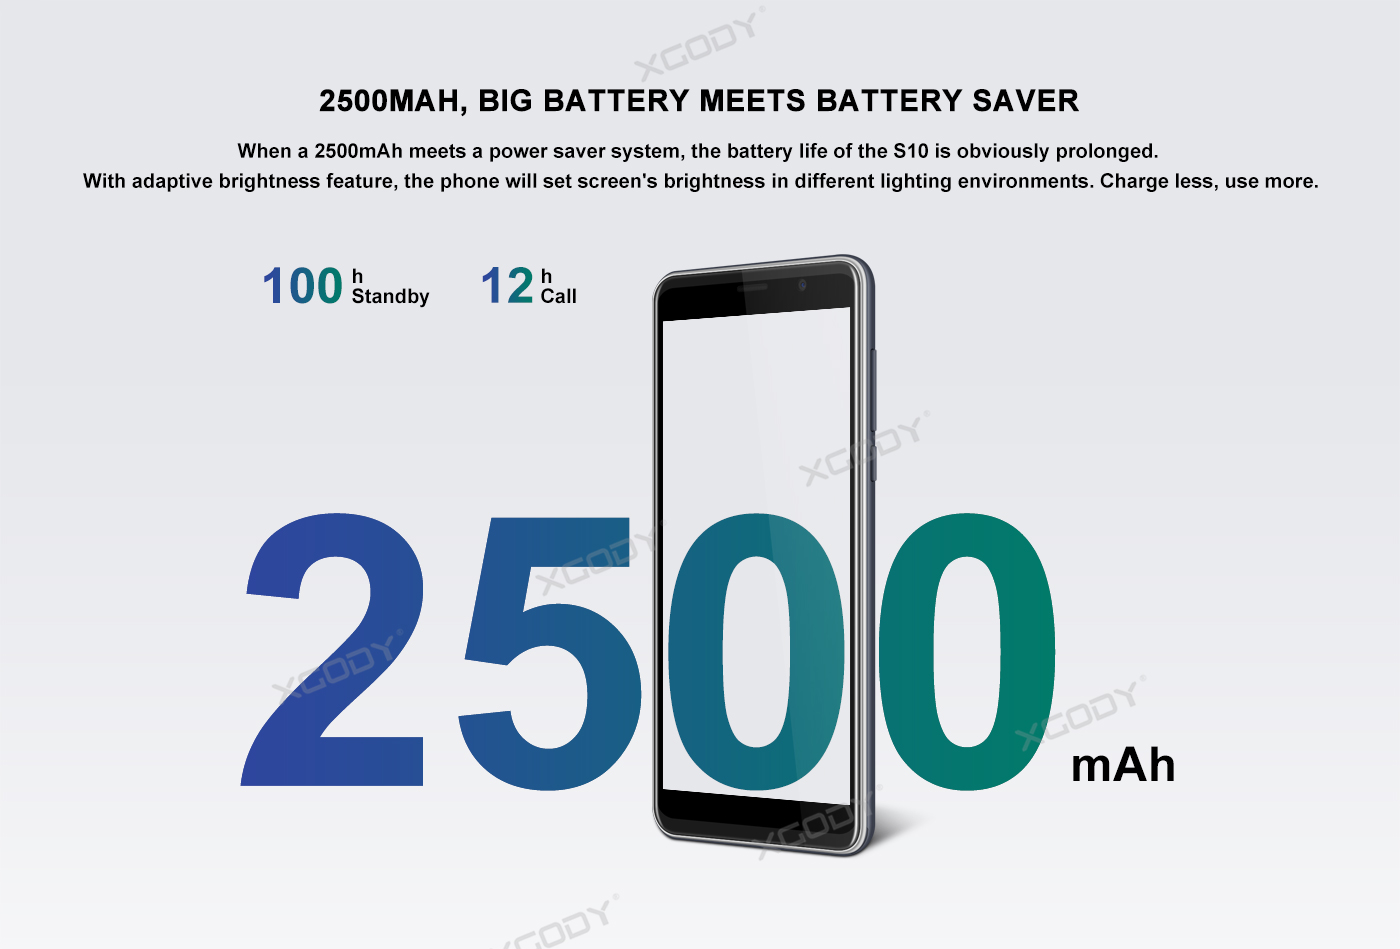 XGODY phone 2500mAh battery up to 100h in standby